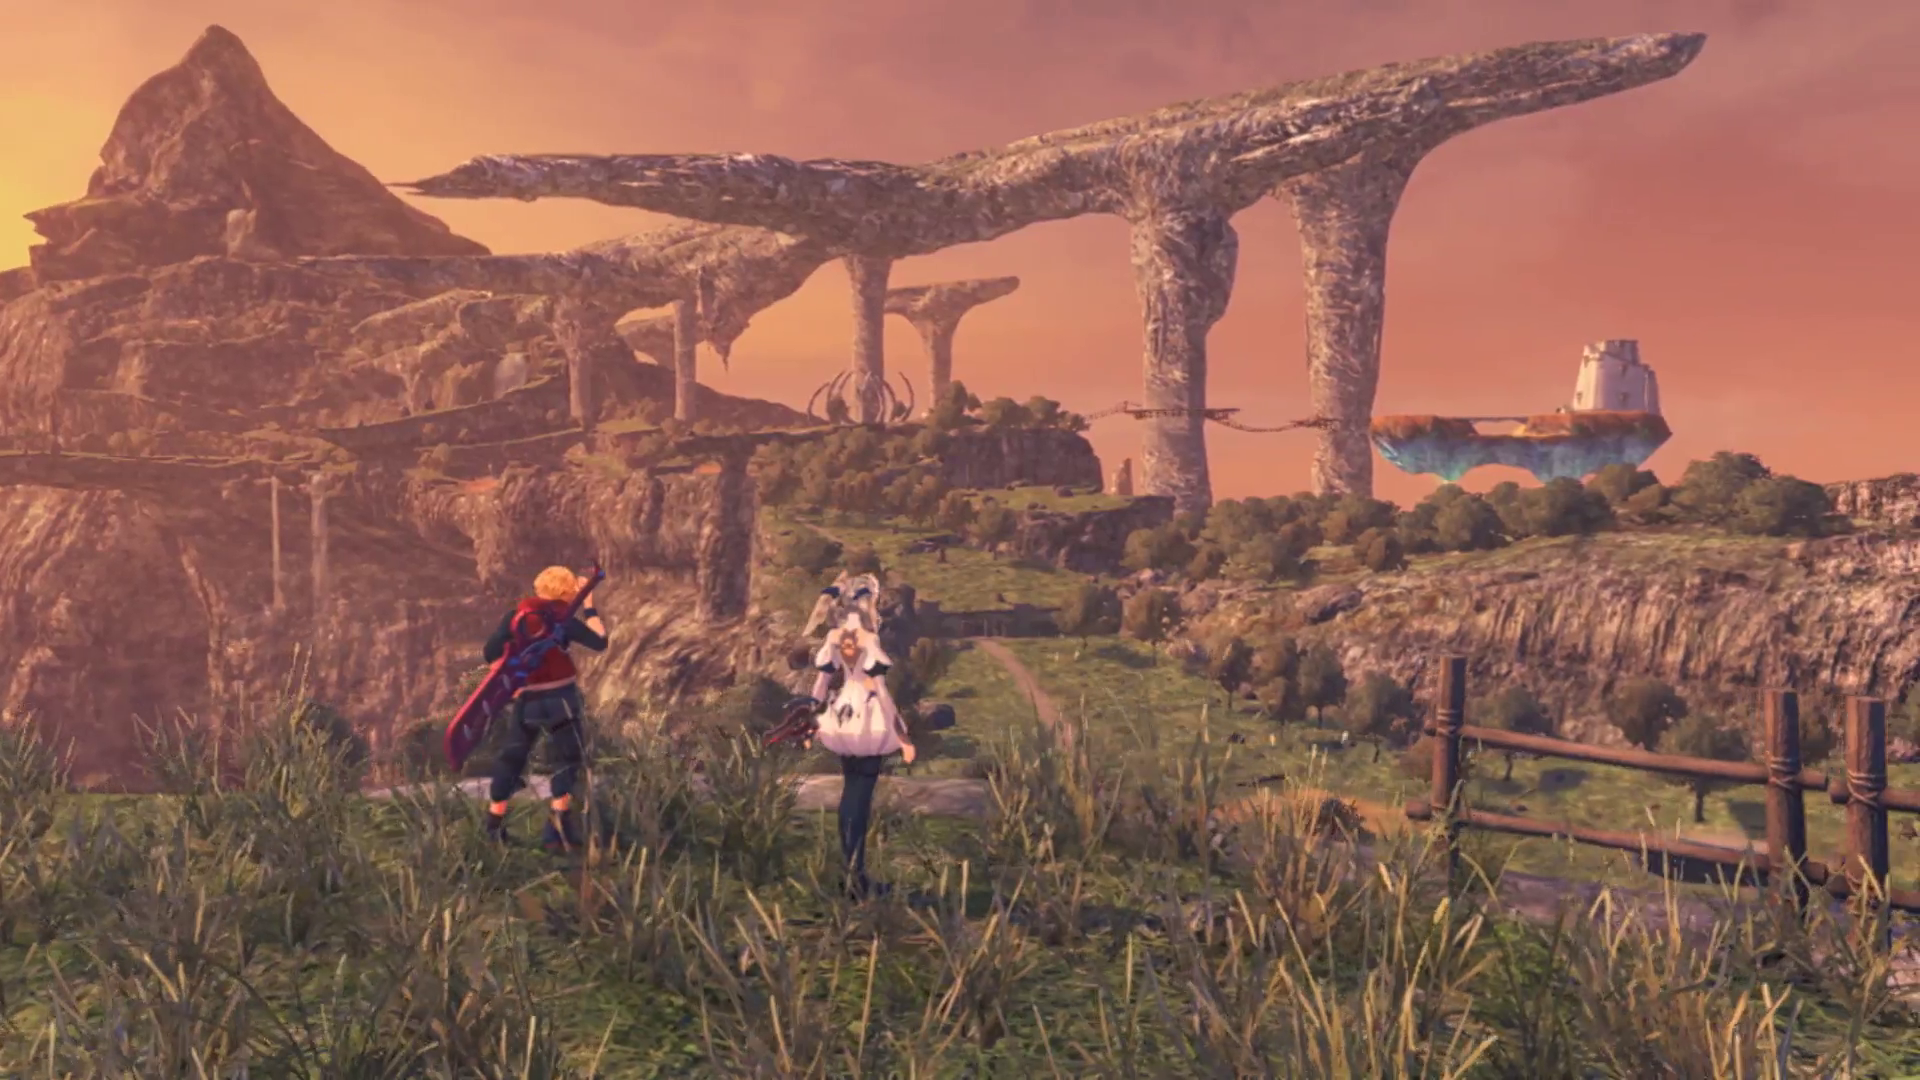 Xenoblade Chronicles is getting a remake for Nintendo Switch